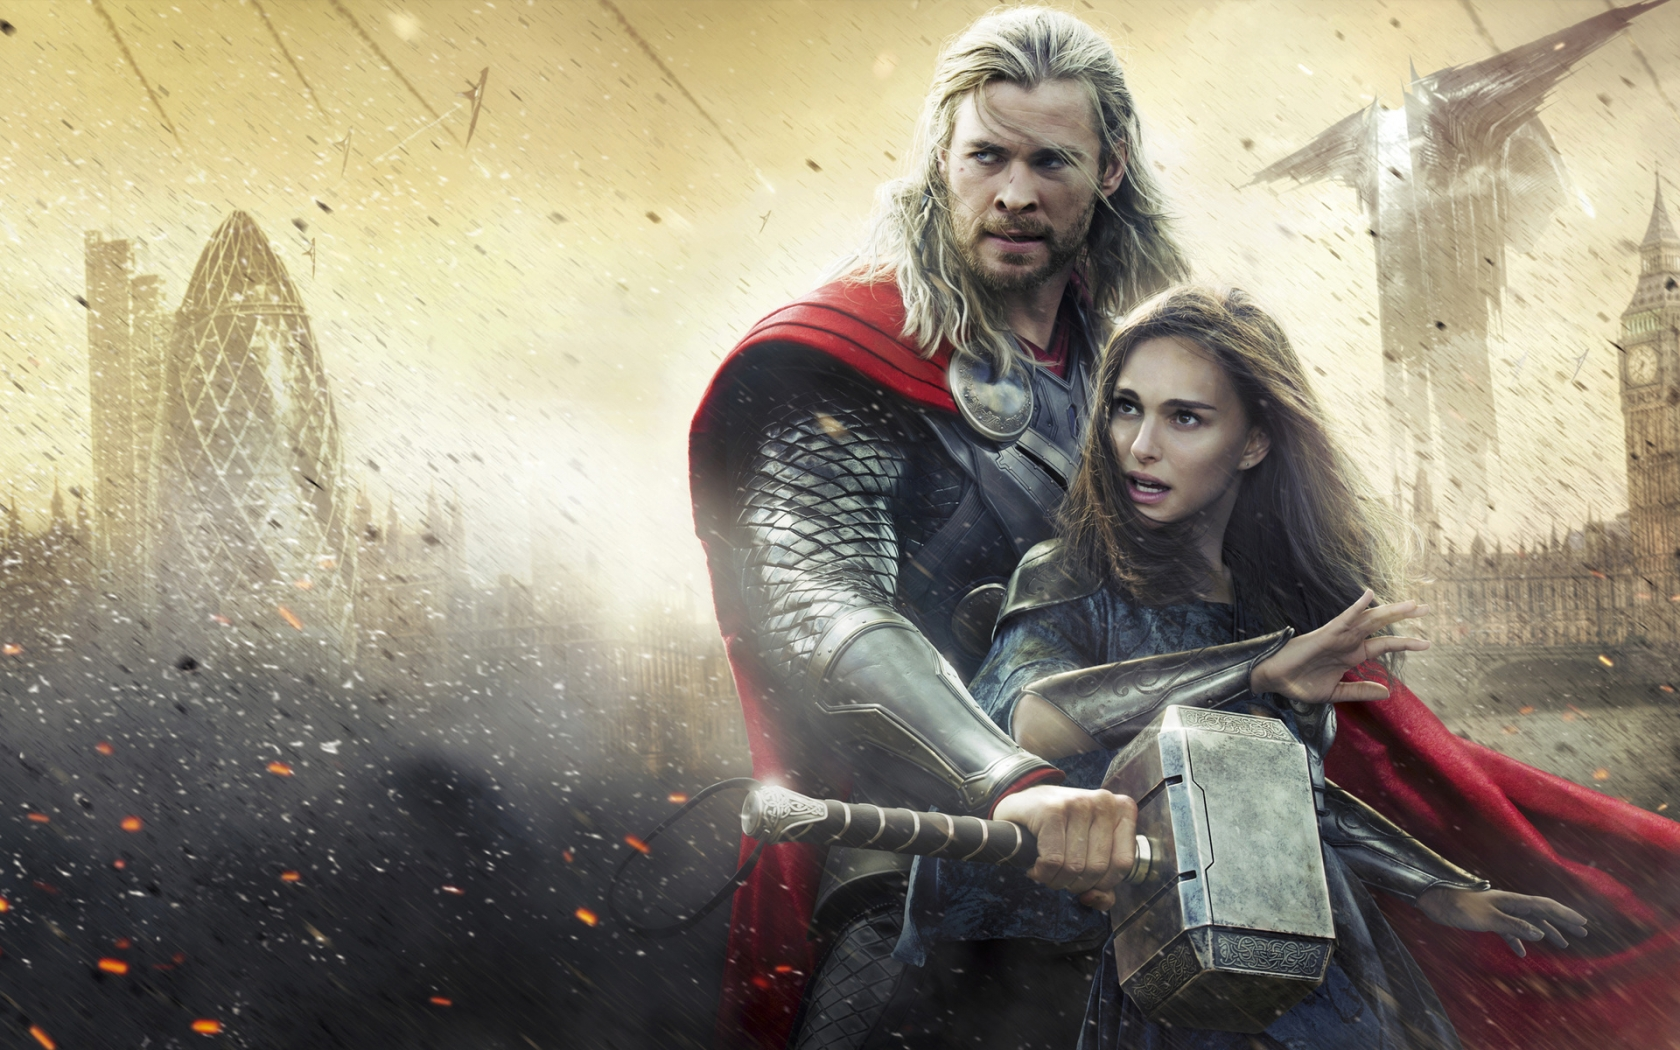 Thor Movie: Thor and Jane Foster for 1680 x 1050 widescreen resolution